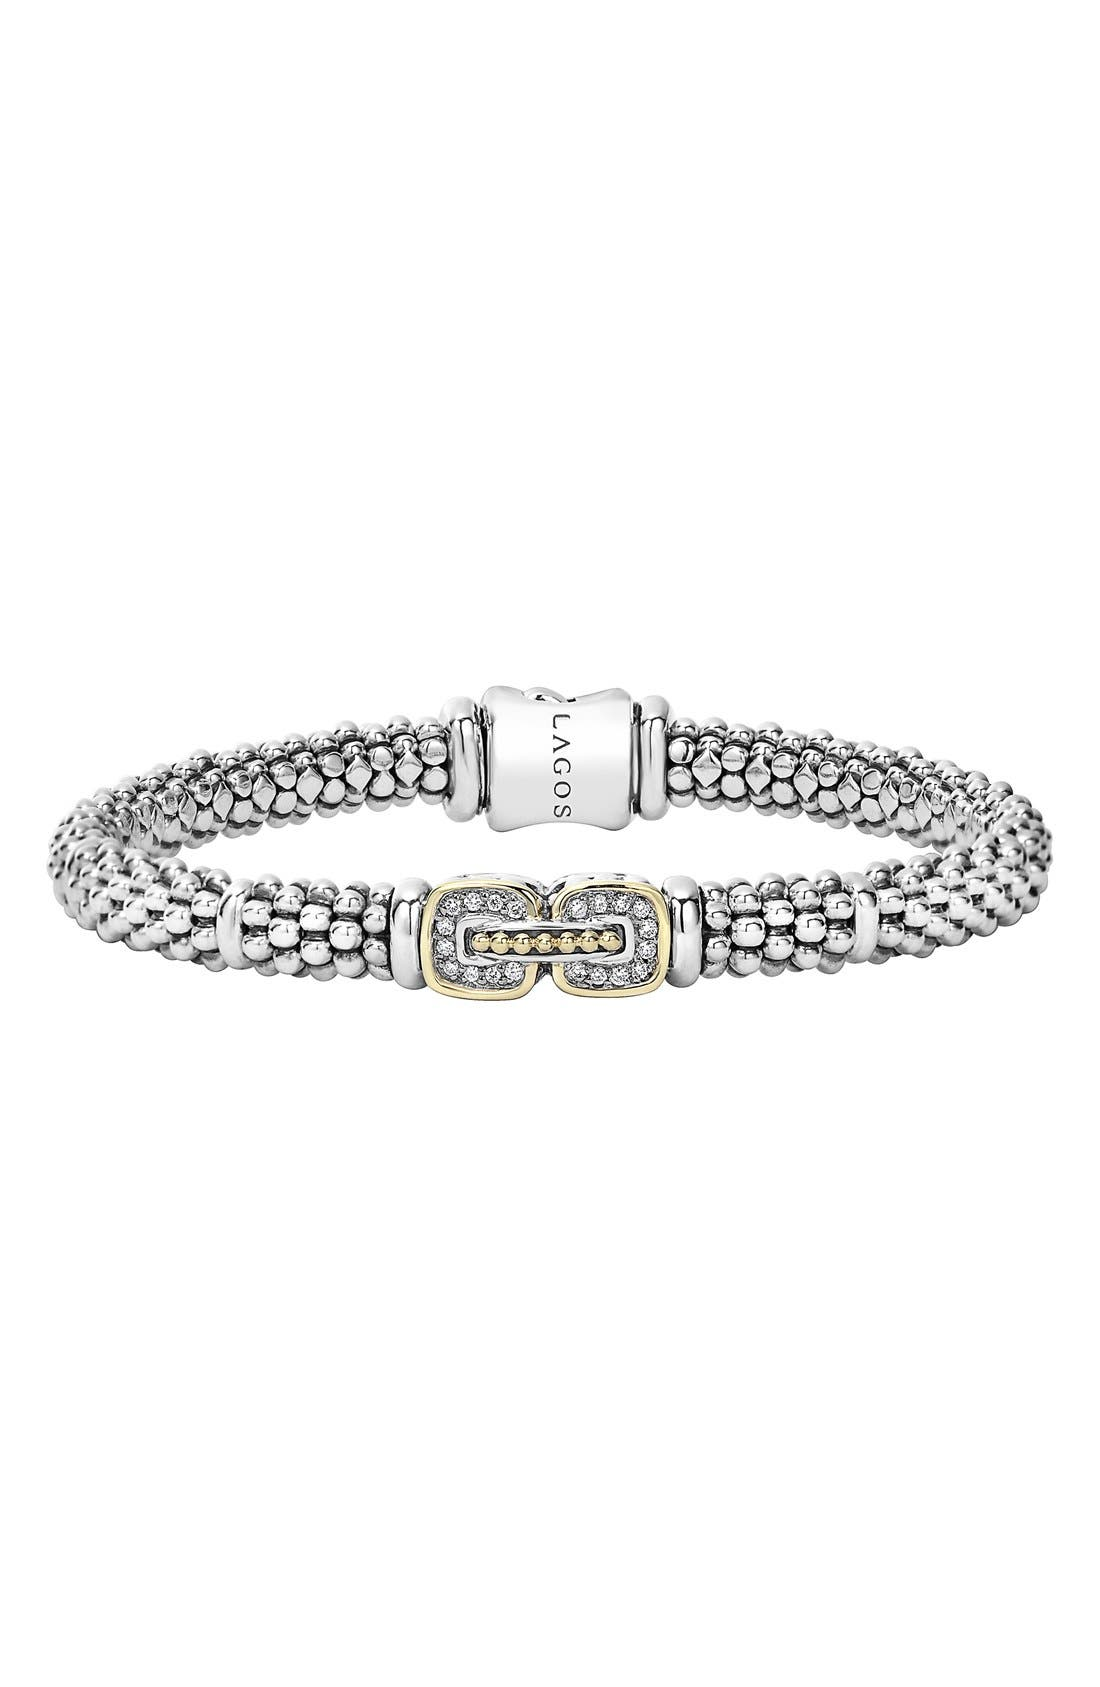 LAGOS 'Cushion' Diamond Caviar Bracelet